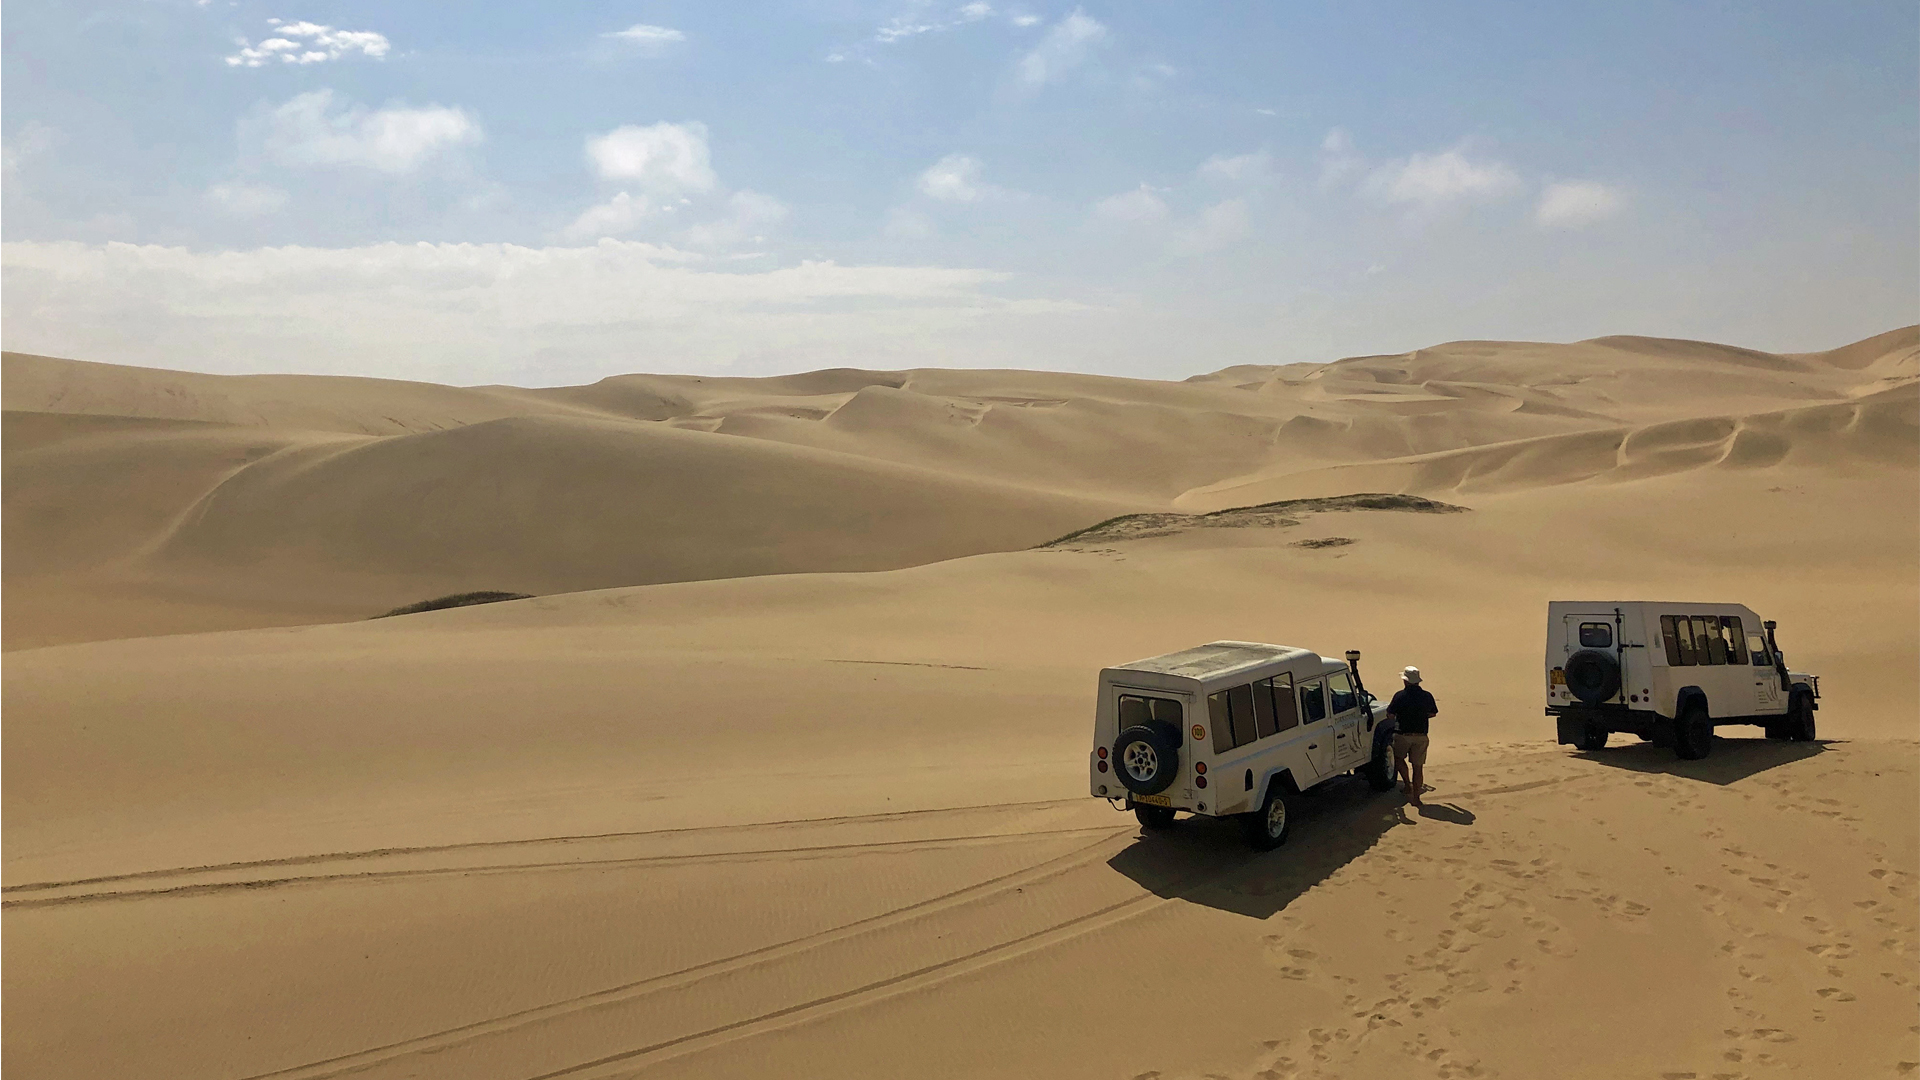 All About Safari Wild Adventure namibia self-driving through dunes